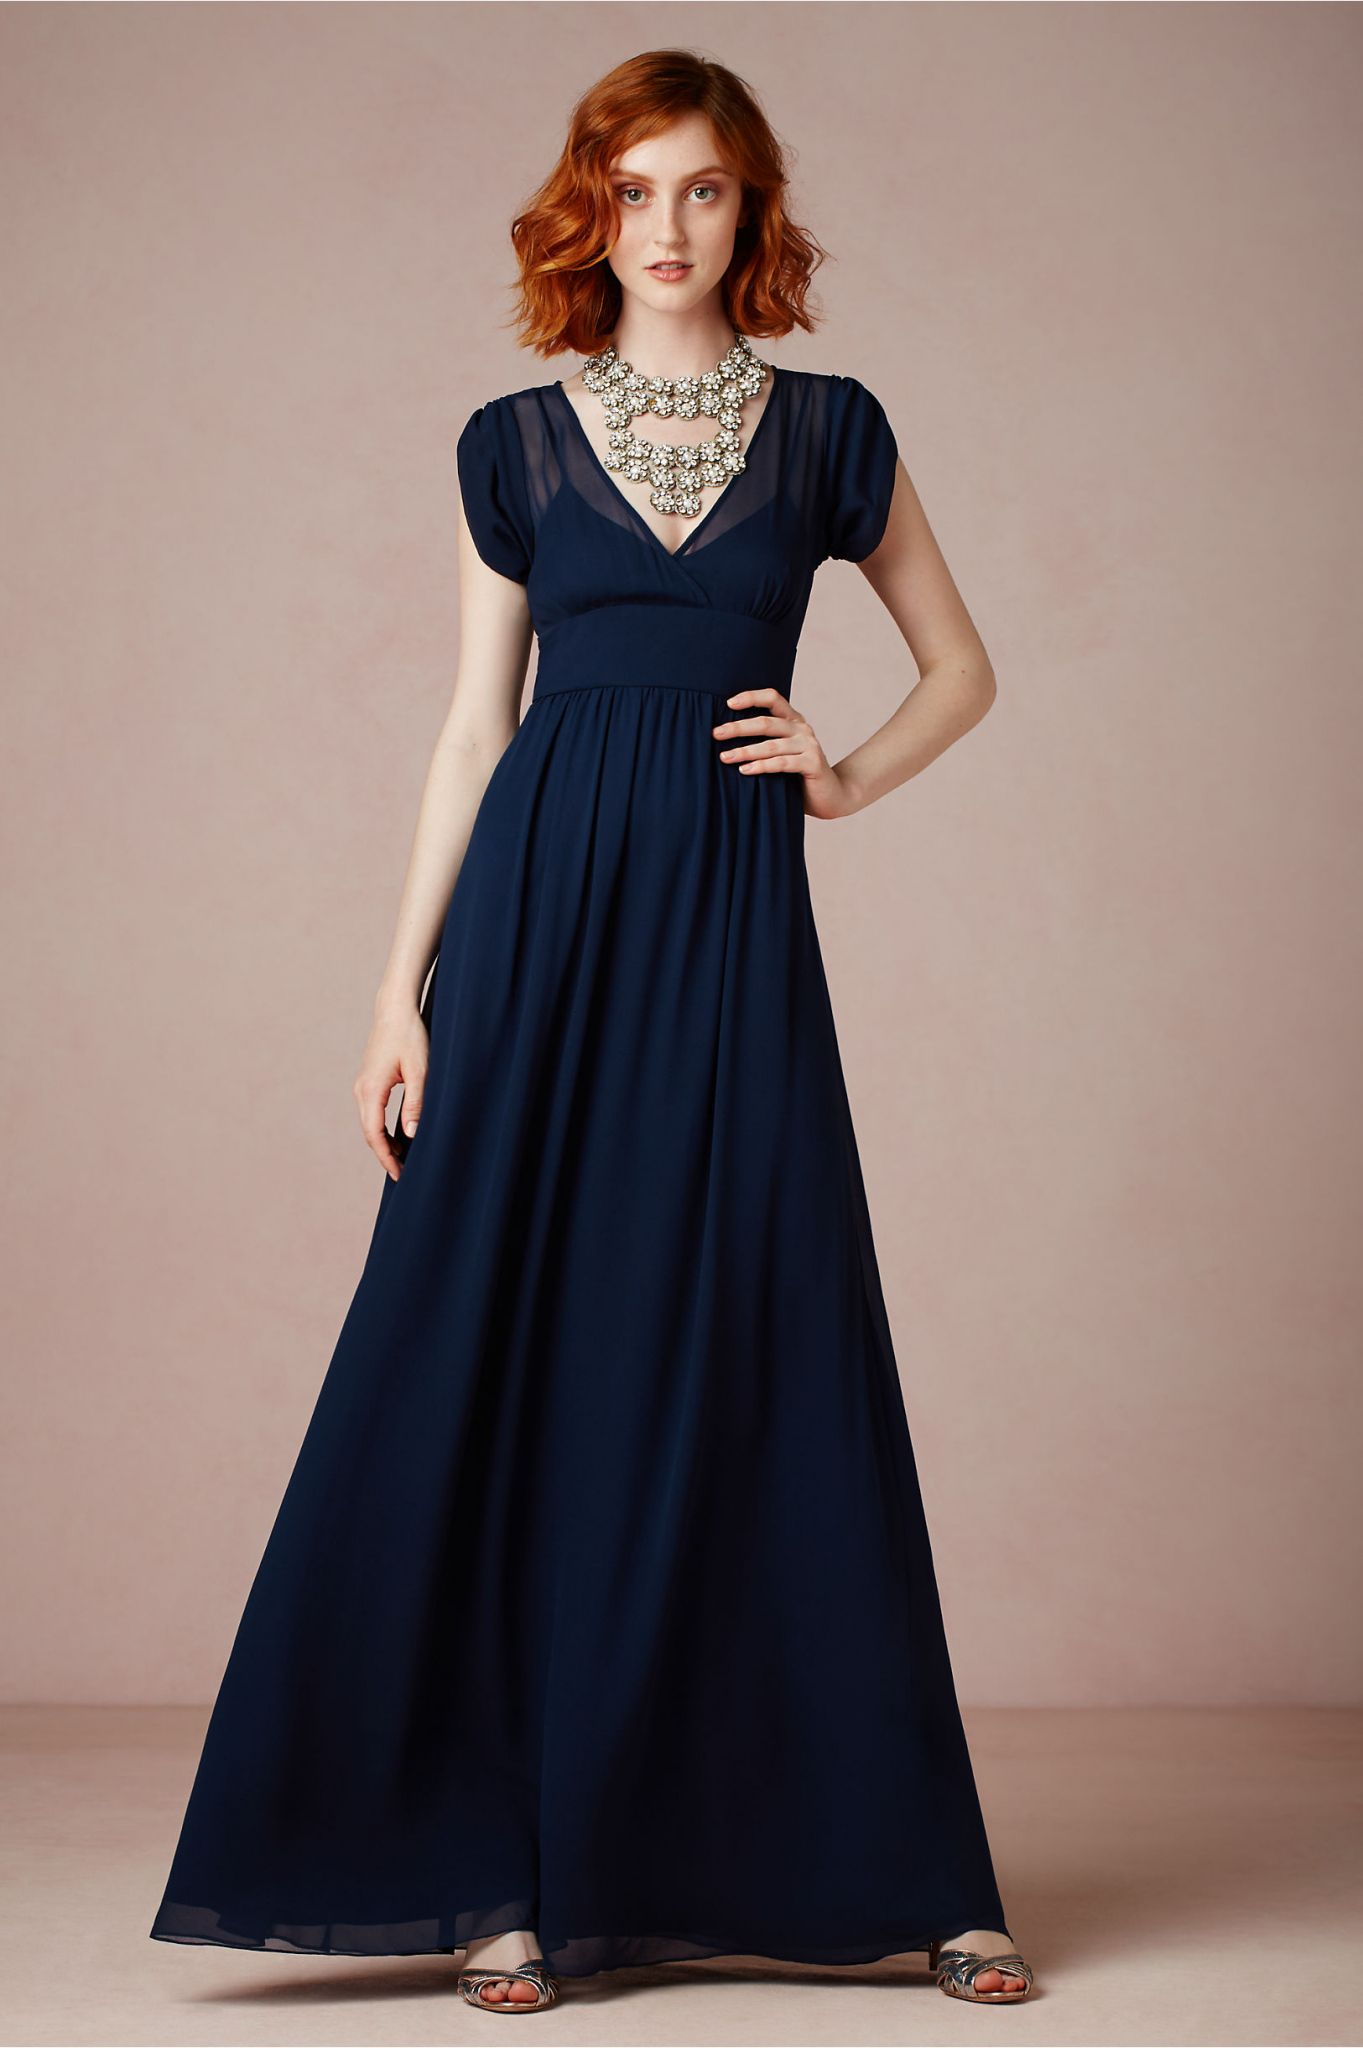 Maxi Dress for Wedding Reception - Best Dresses for Wedding Check ...